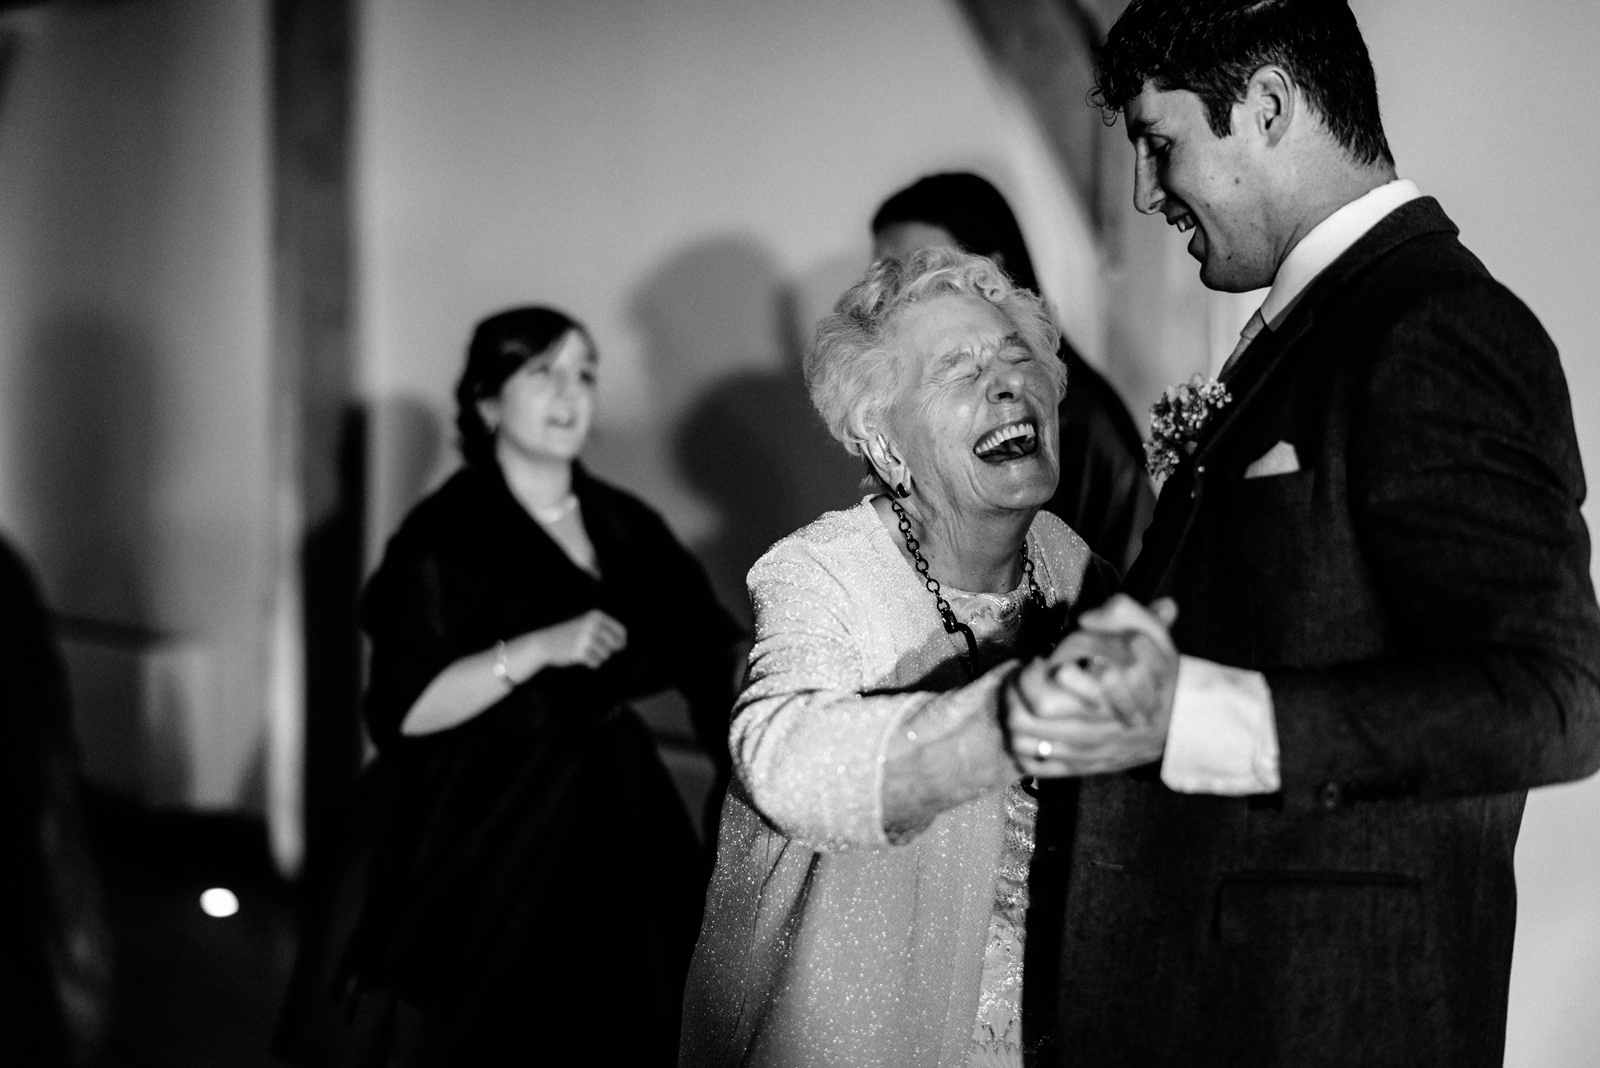 grandma dances with groom